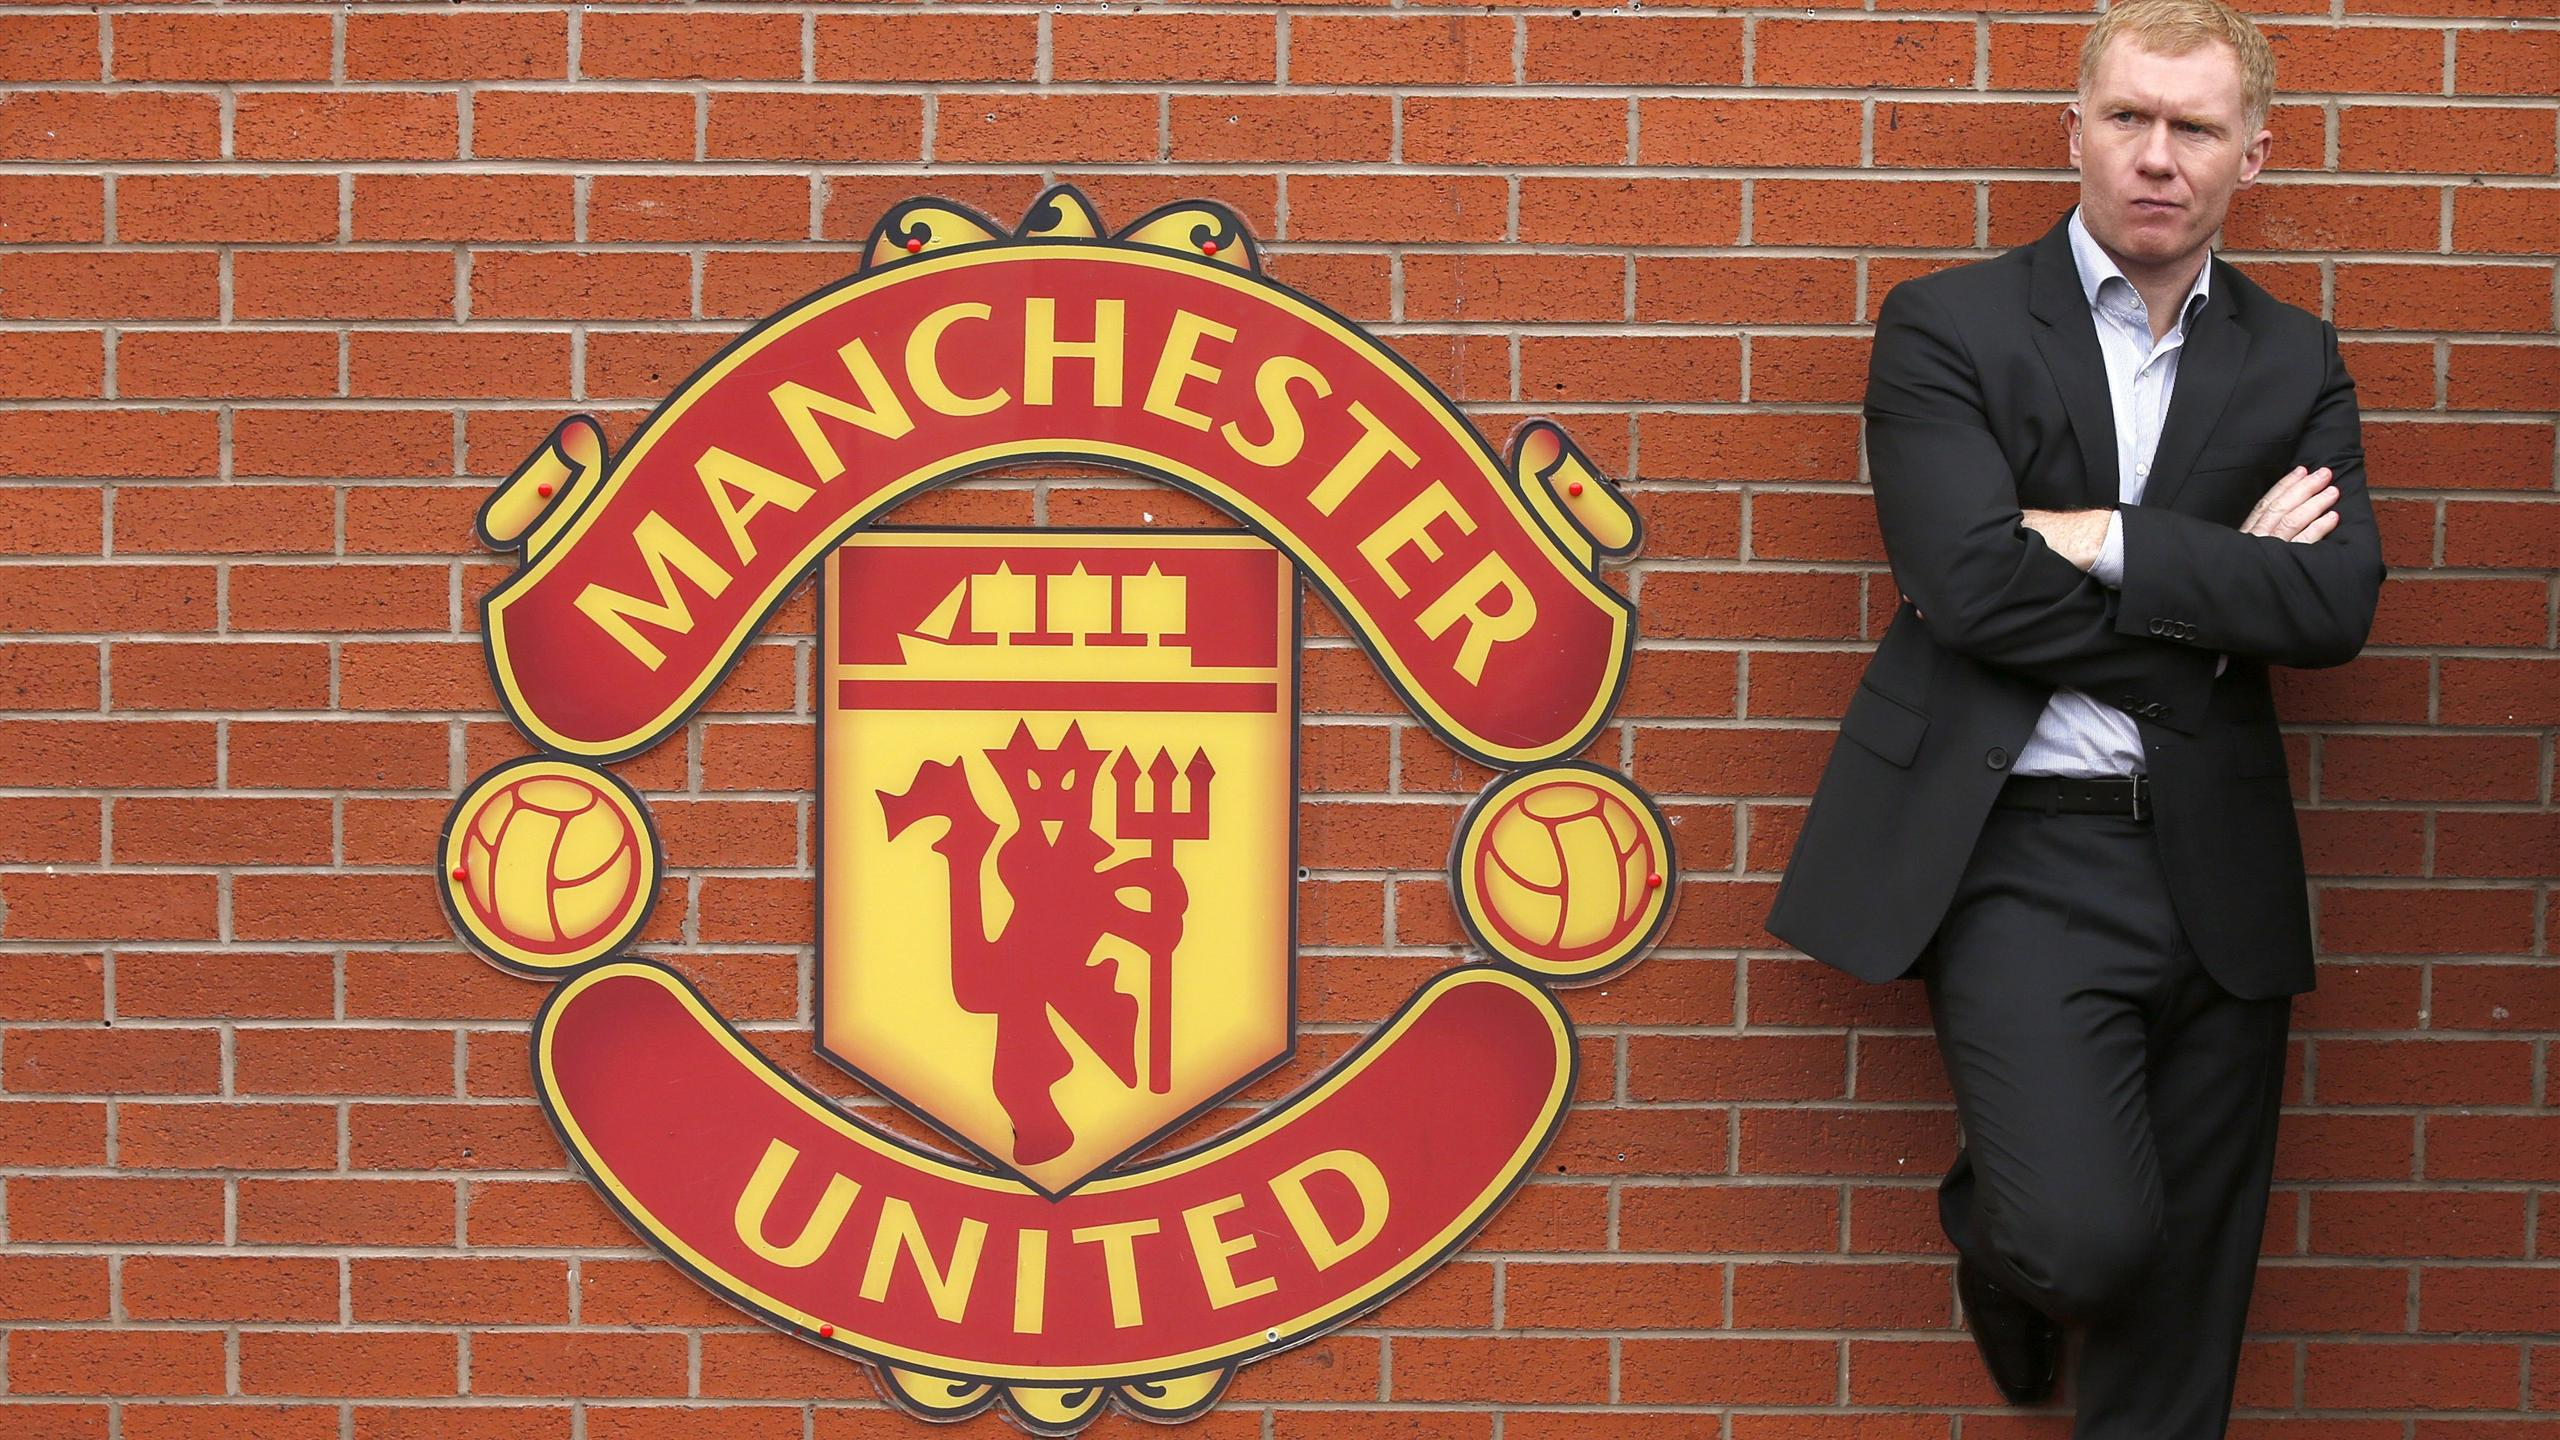 Paul Scholes wants to see major changes at Manchester United